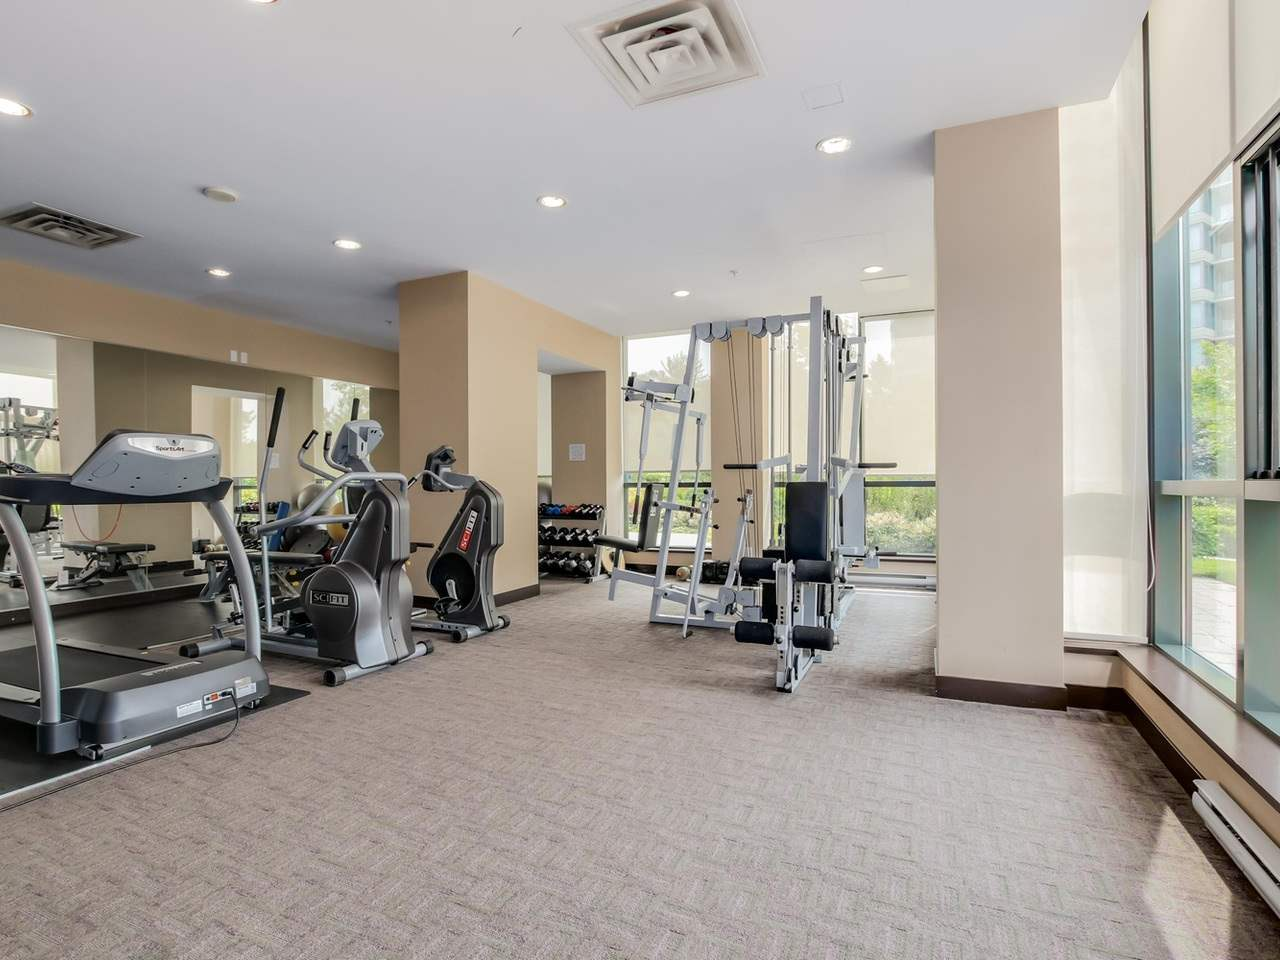 Photo 3: 203 288 UNGLESS WAY in Port Moody: Port Moody Centre Condo for sale : MLS(r) # R2071333